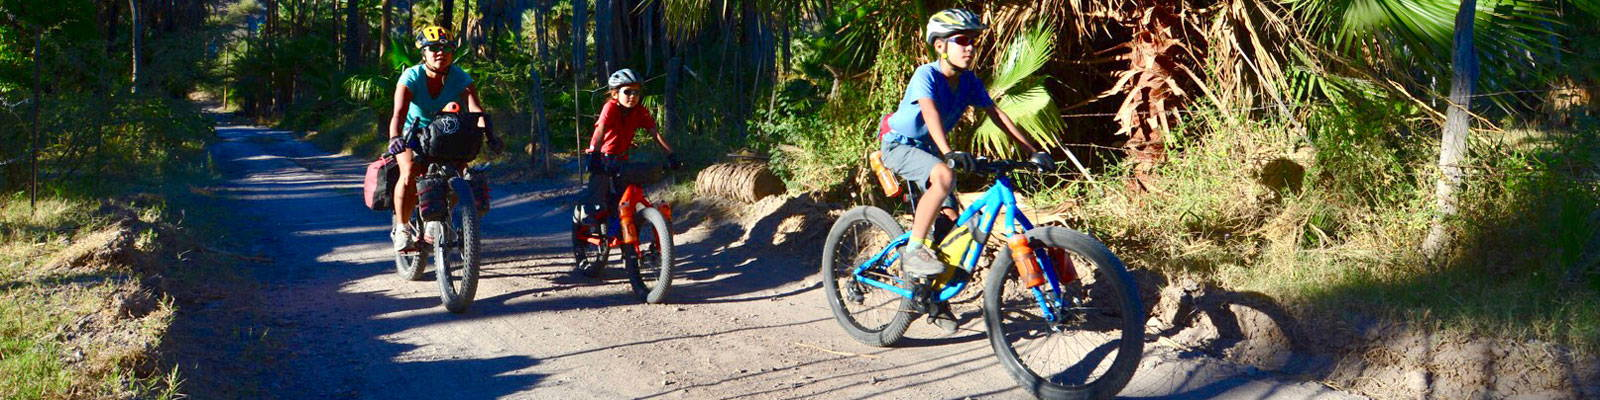 Salsa Cycles has the perfect kids bikes for any adventure.